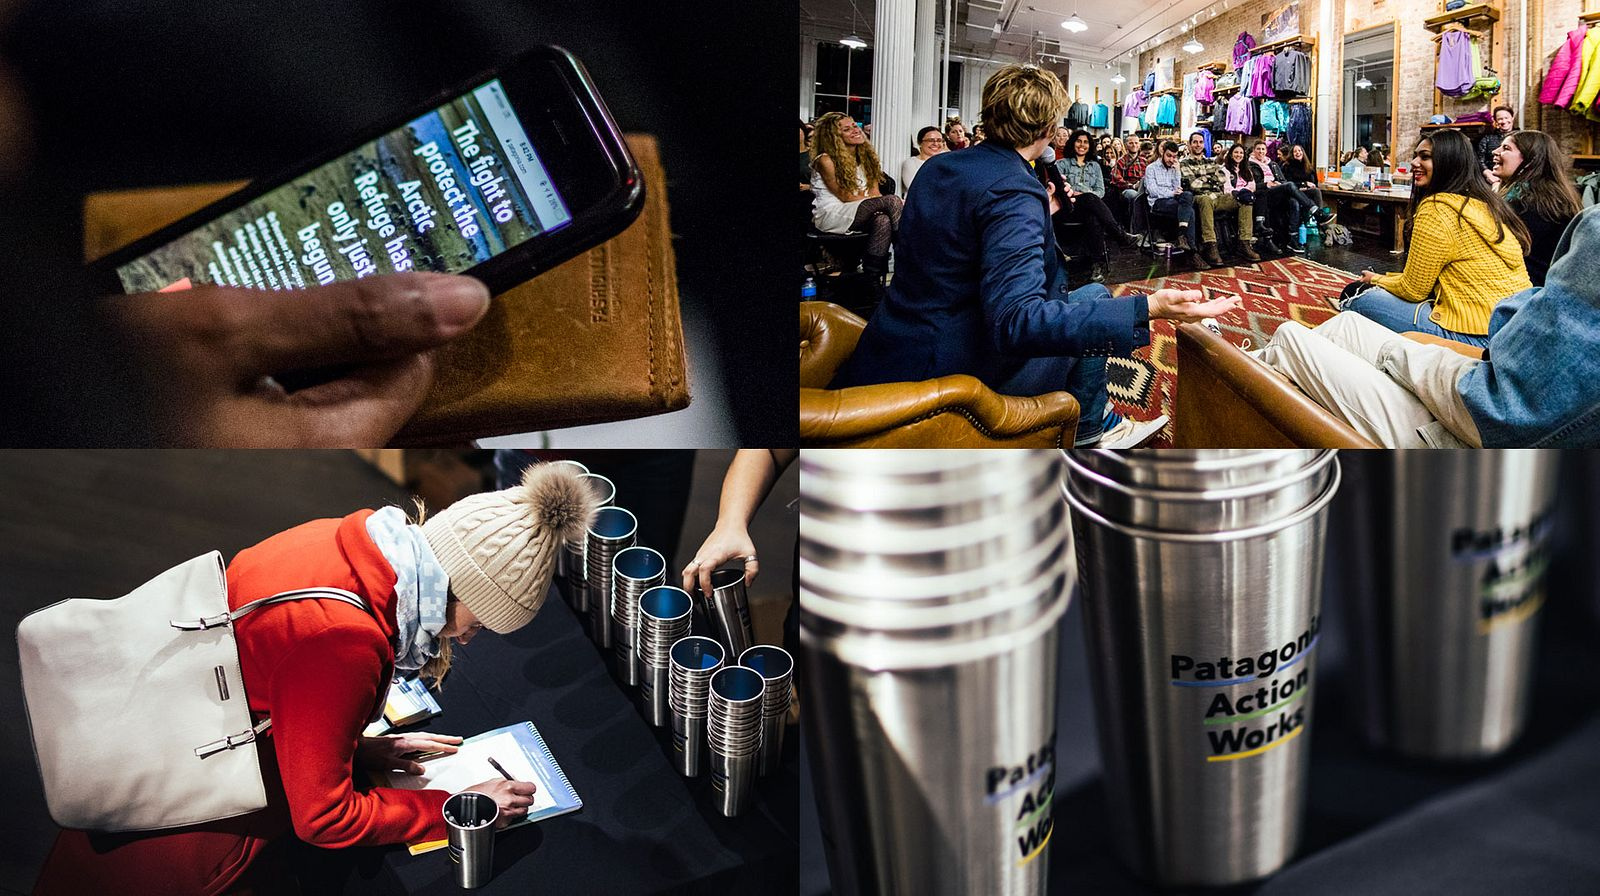 Four photographs of people assembled in Patagonia stores, a person on the Patagonia Action Works site on a phone, and branded stainless steel cups.